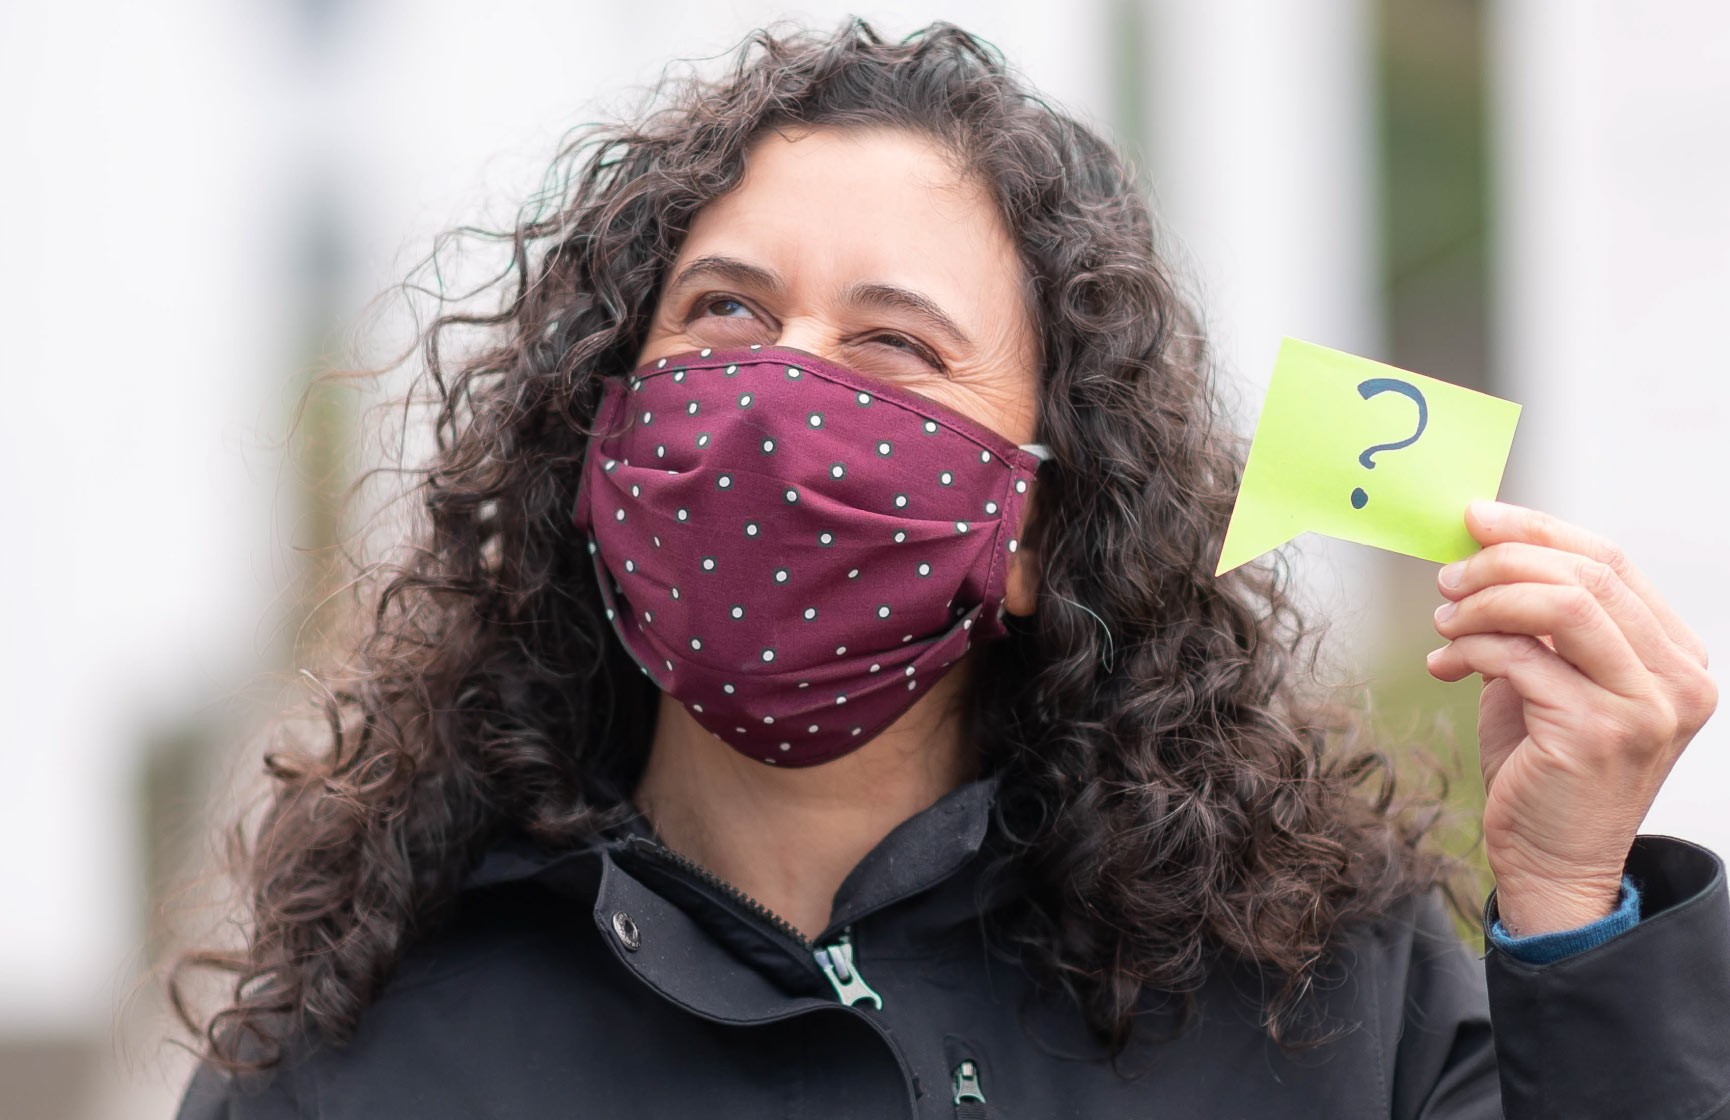 A person wearing a COVID-19 face mask holds up a sign with a question mark on it to indicate that they can't understand what people are saying